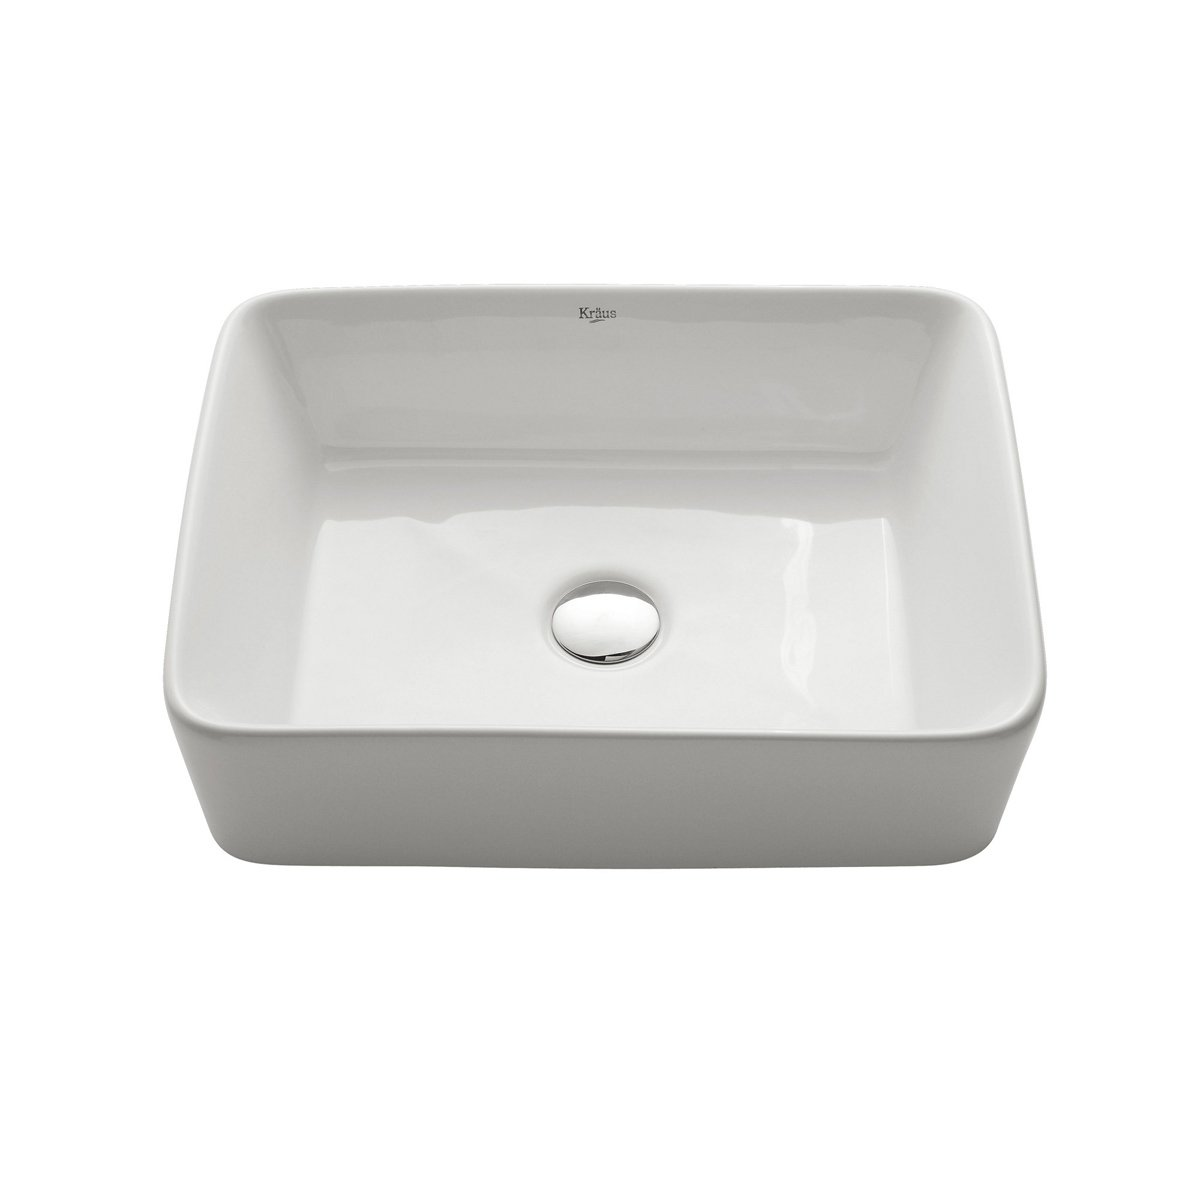 Best Ceramic Sinks 2018 - Uncle Paul\'s Comprehensive Buying Guide